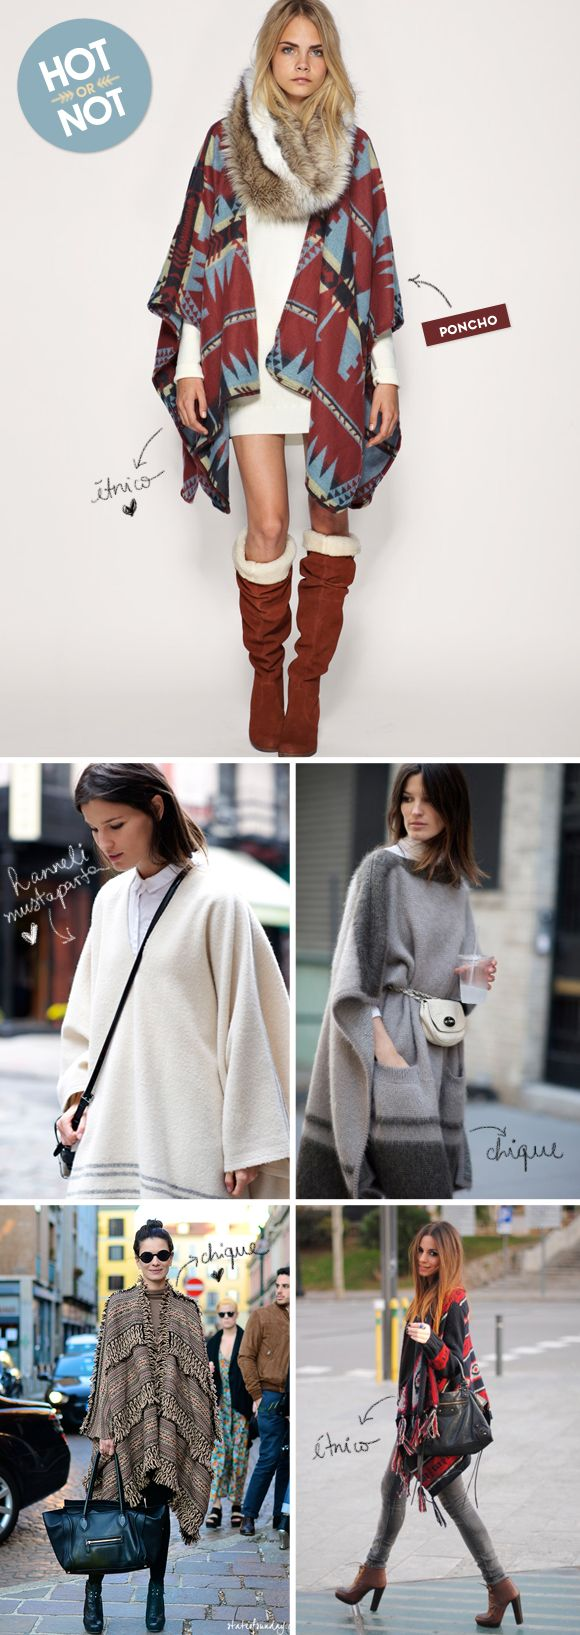 Hot or not: ponchos